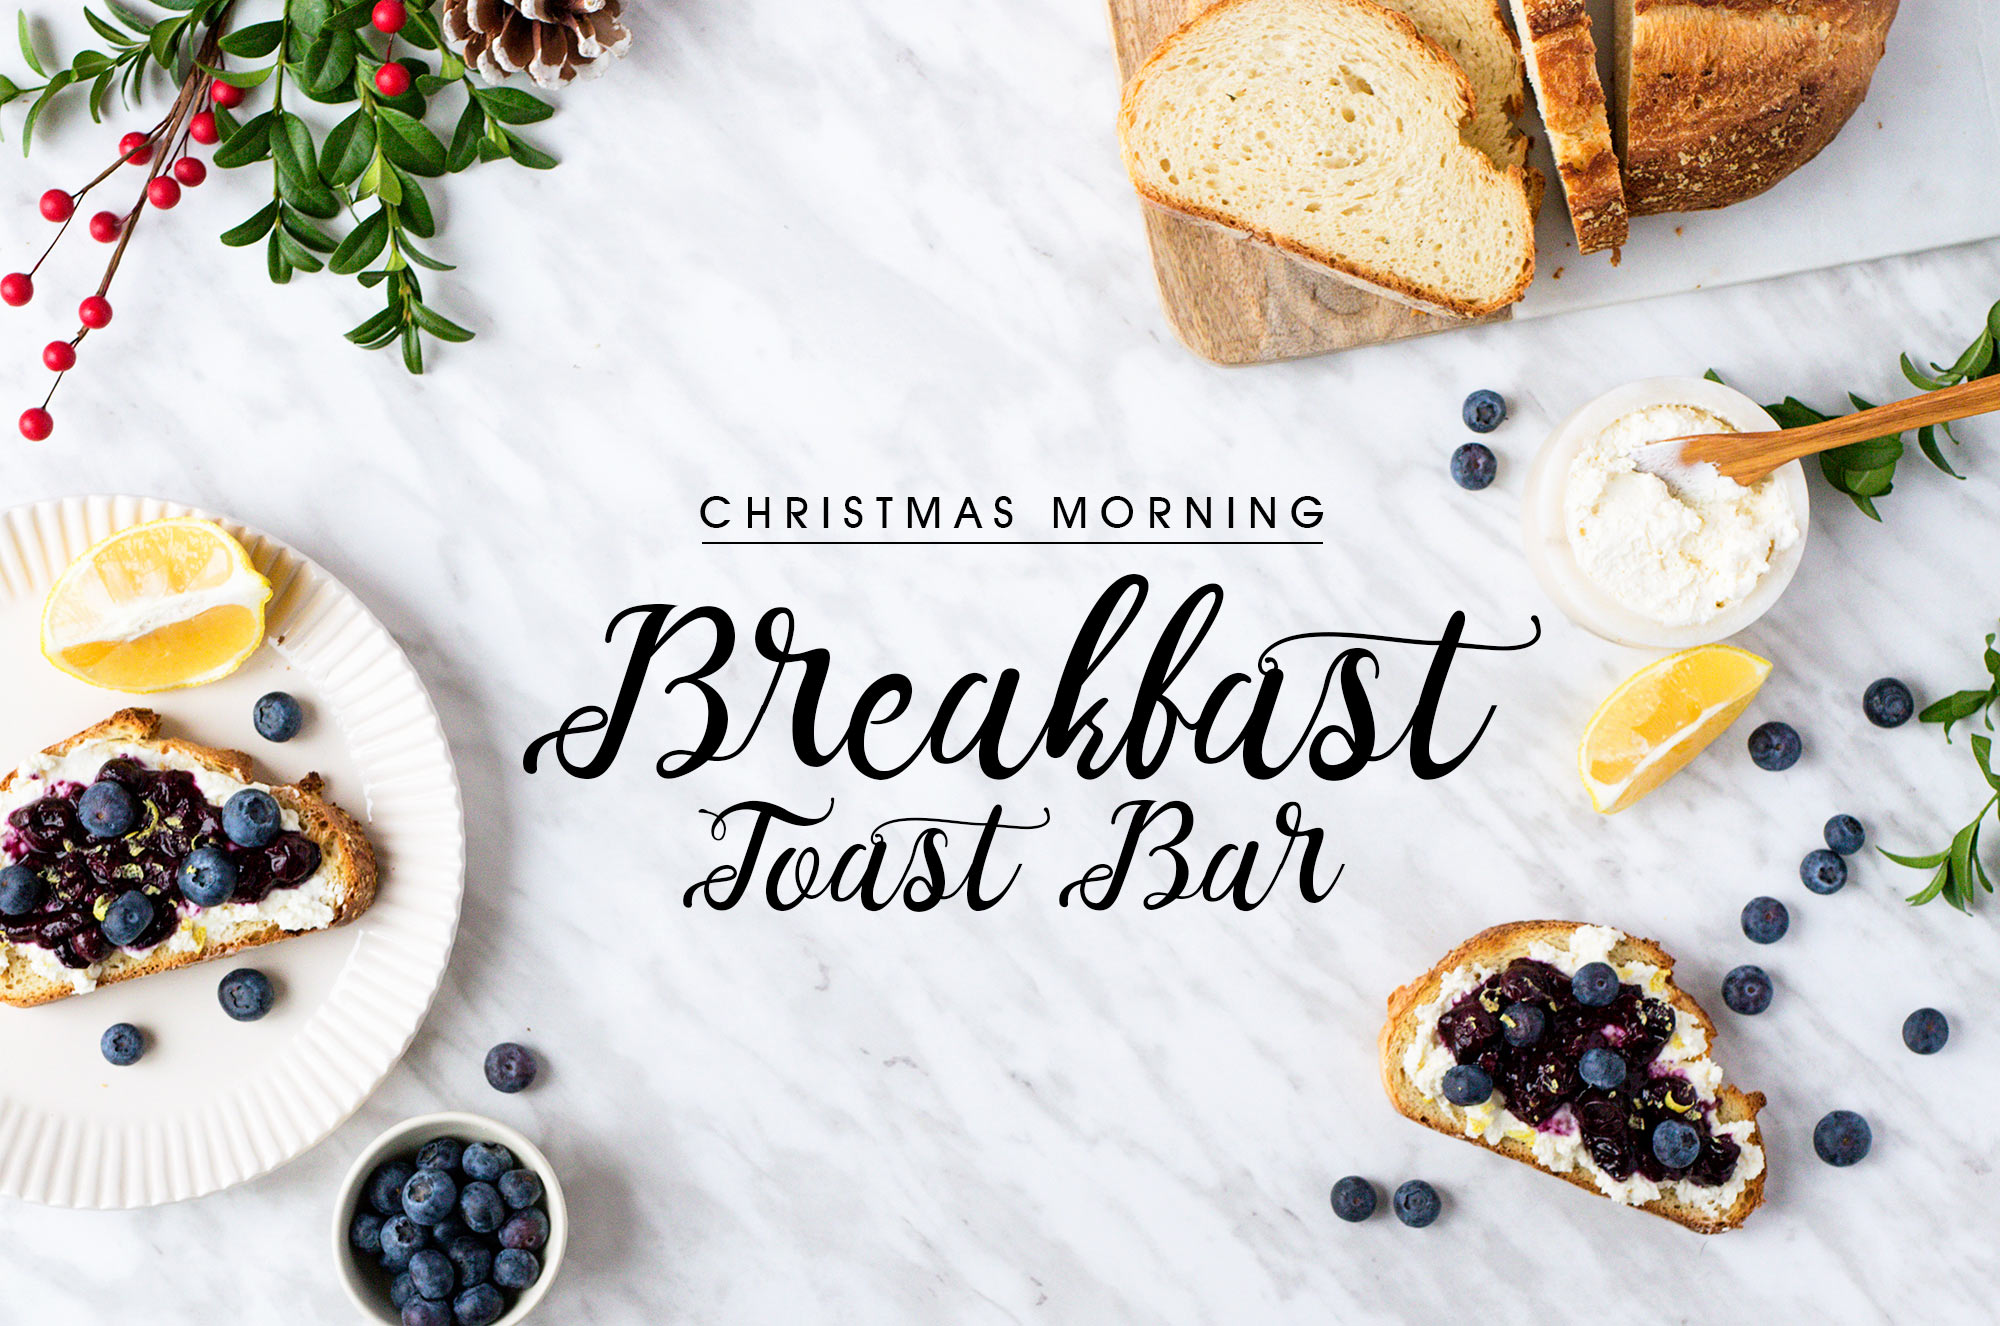 Christmas Morning Breakfast Toast Bar Ideas